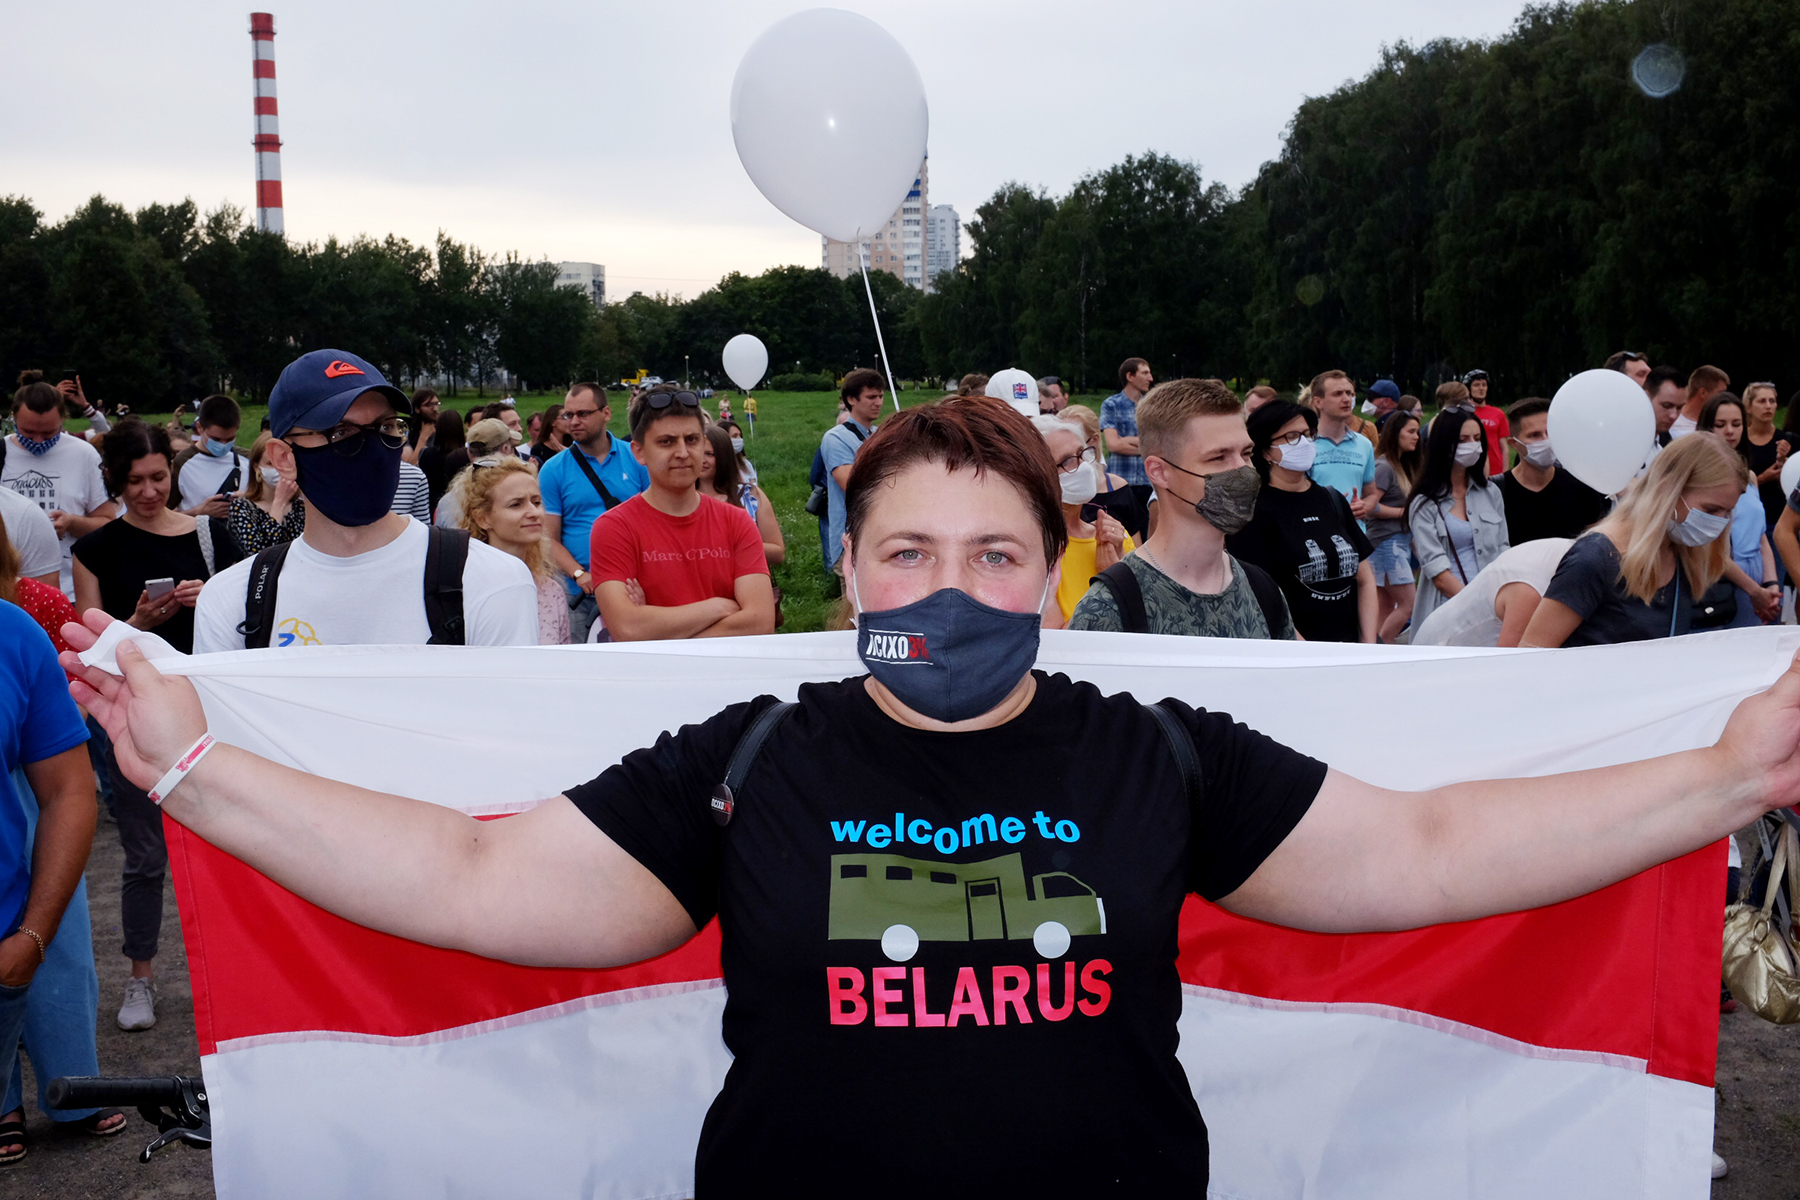 Image: Lesia Pcholka, from the first weeks of the protest